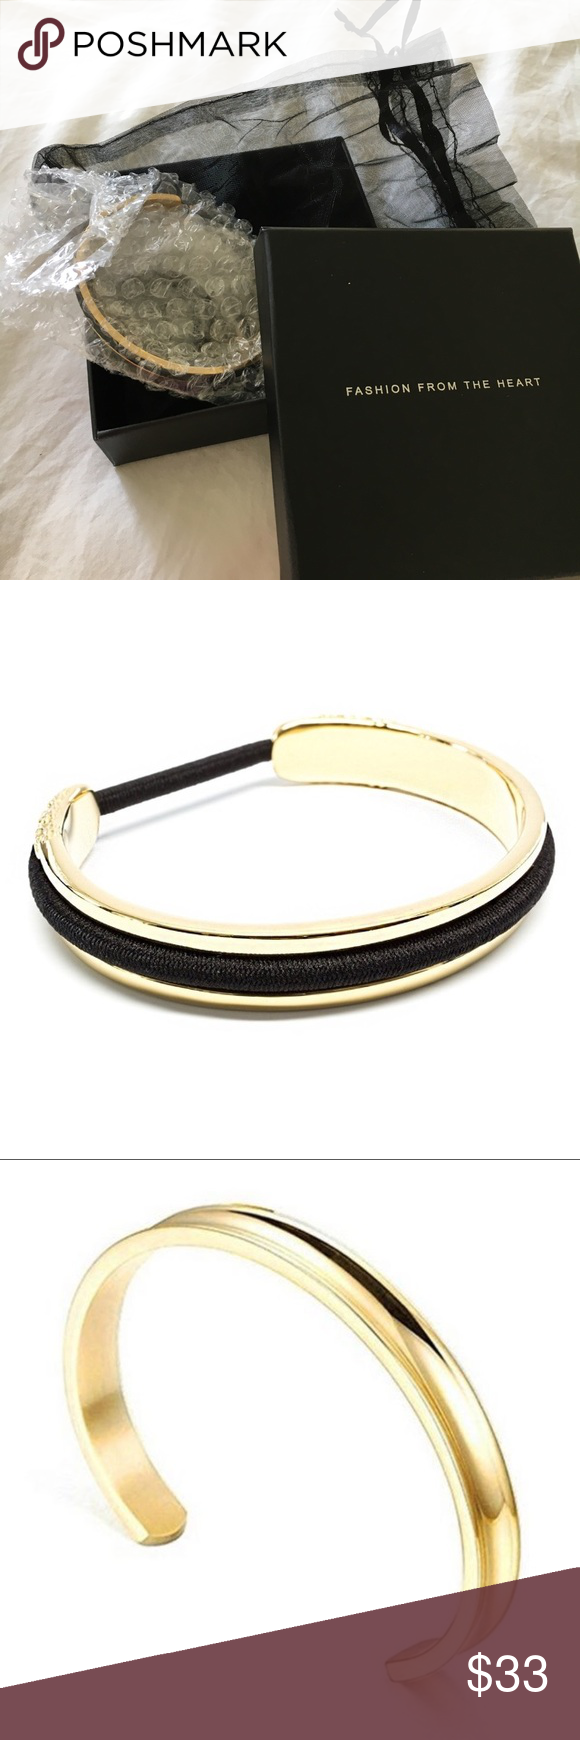 Ashley Bridget • Skinny Elastic Holder Bangle Dress up that grungy hair tie  around your wrist de143b94d9c